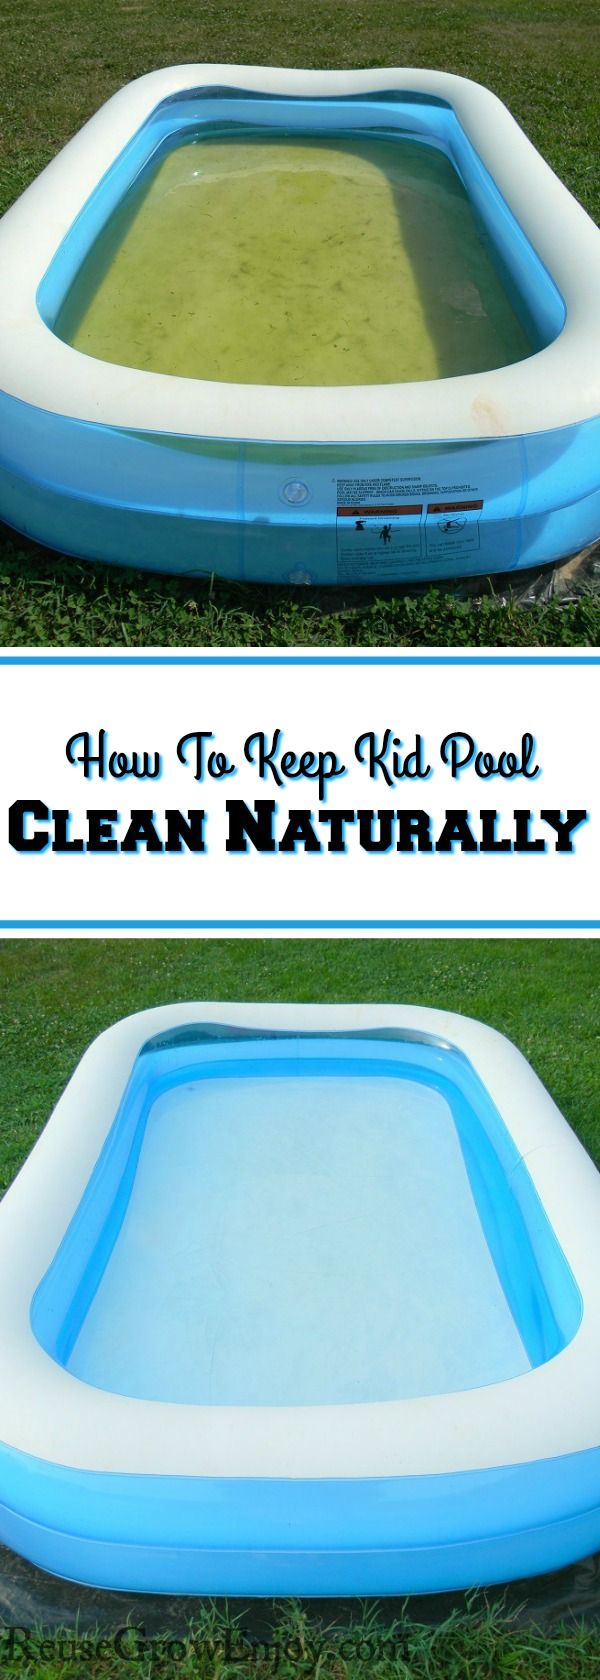 Don't you hate how fast a kiddie pool turns green? I am going to show you a tip on how to keep a kid pool clean naturally without chemicals.